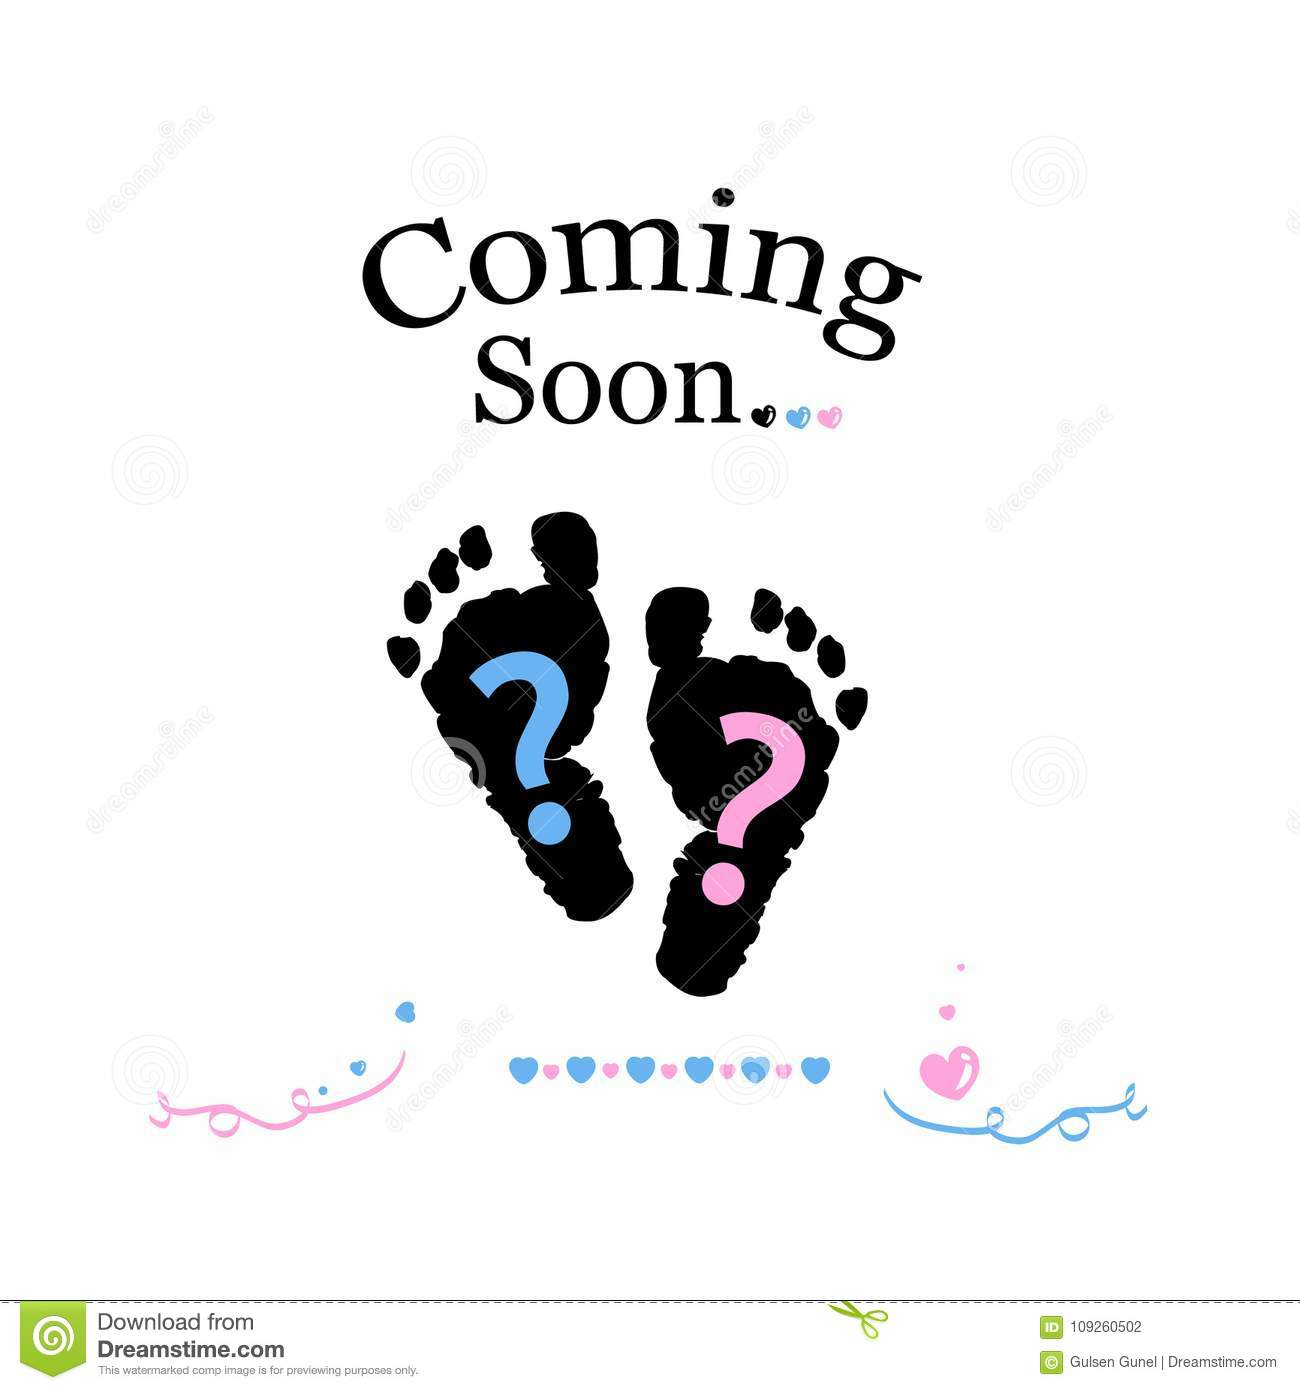 Coming soon baby. Baby gender reveal symbol. Girl, boy and twin baby symbol